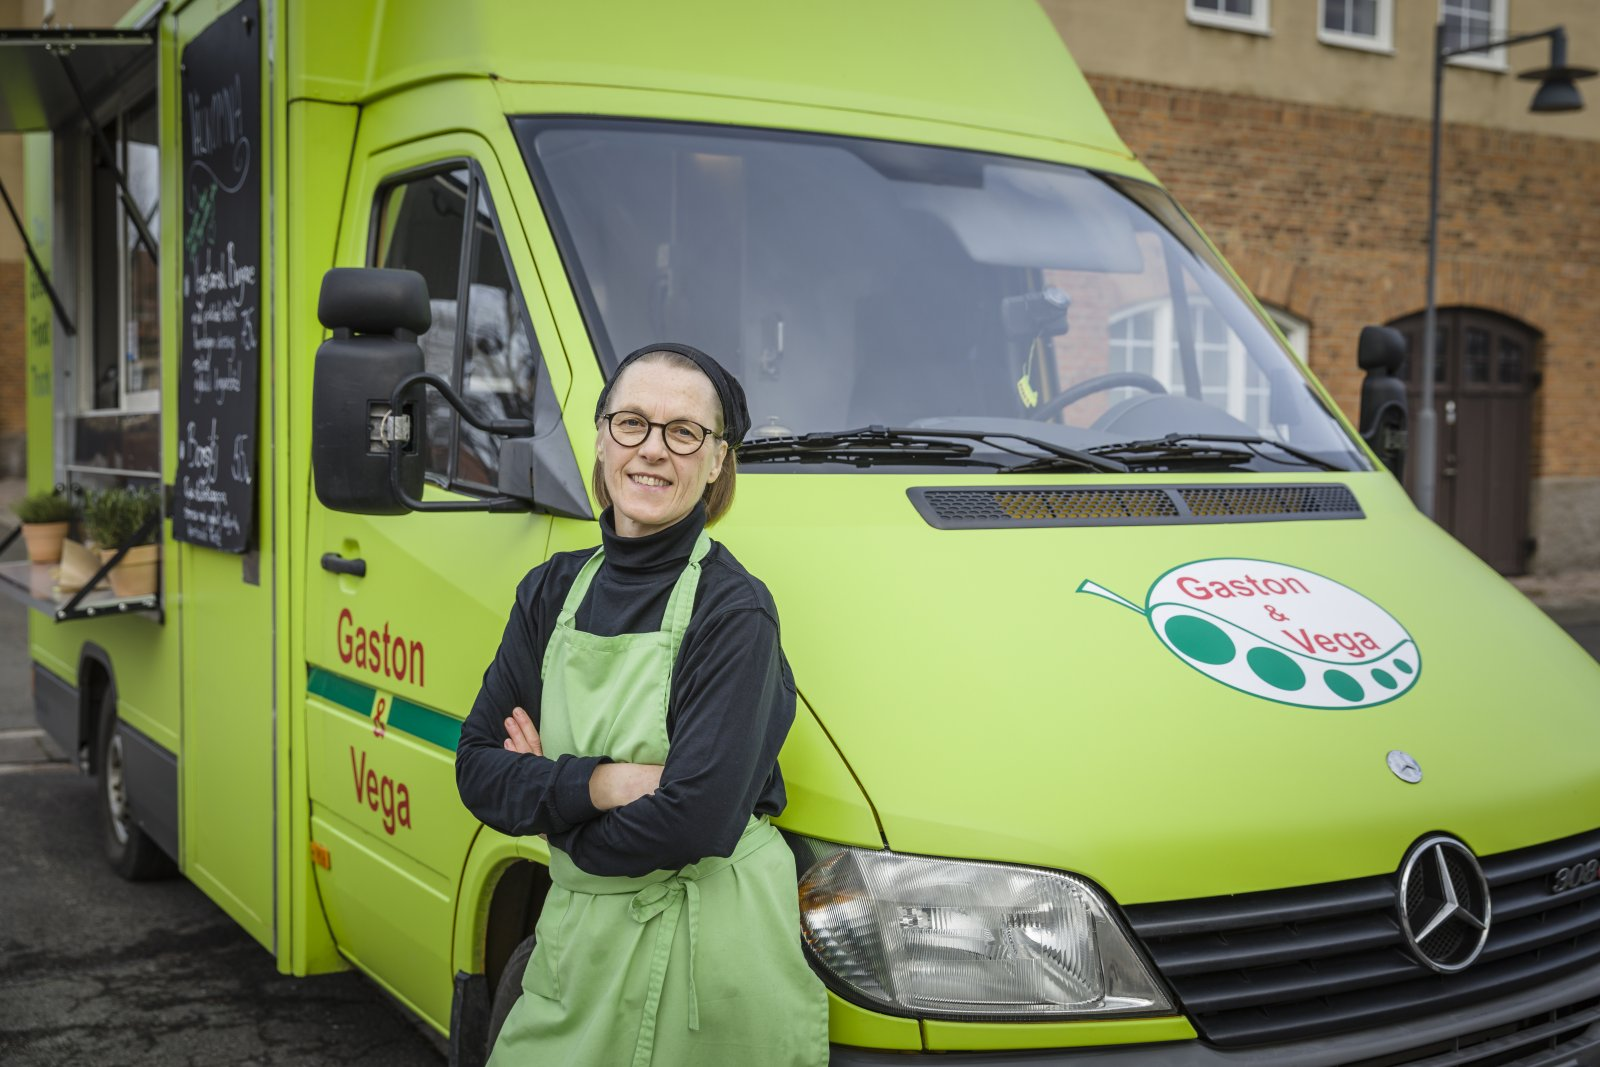 Annelie Idman, Gaston & Vega, the green food truck. © Sven Persson / swelo.se